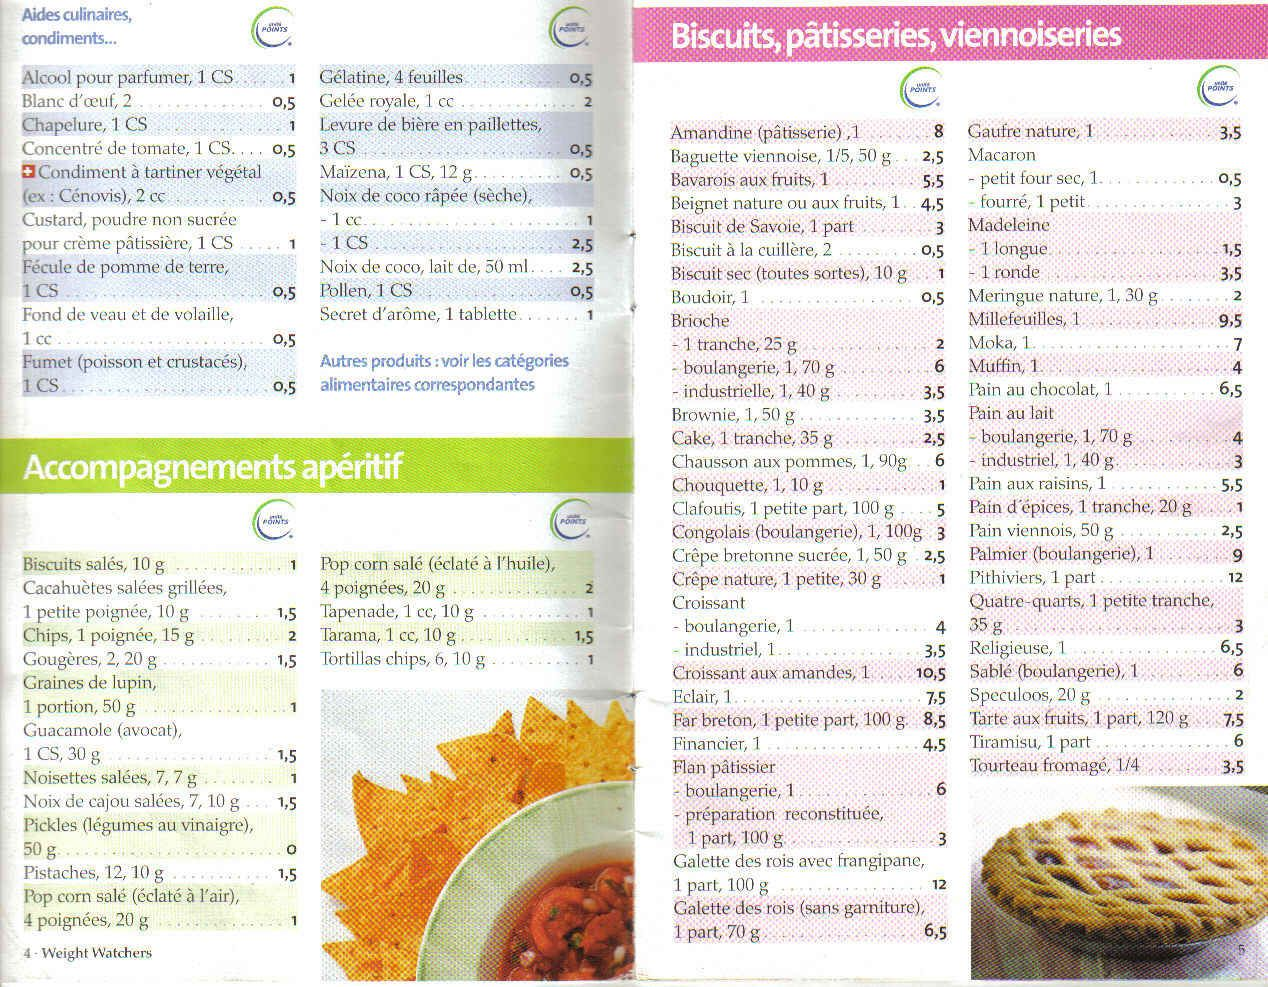 Berühmt Liste des points Weight Watchers biscuits | essai | Pinterest  HB39